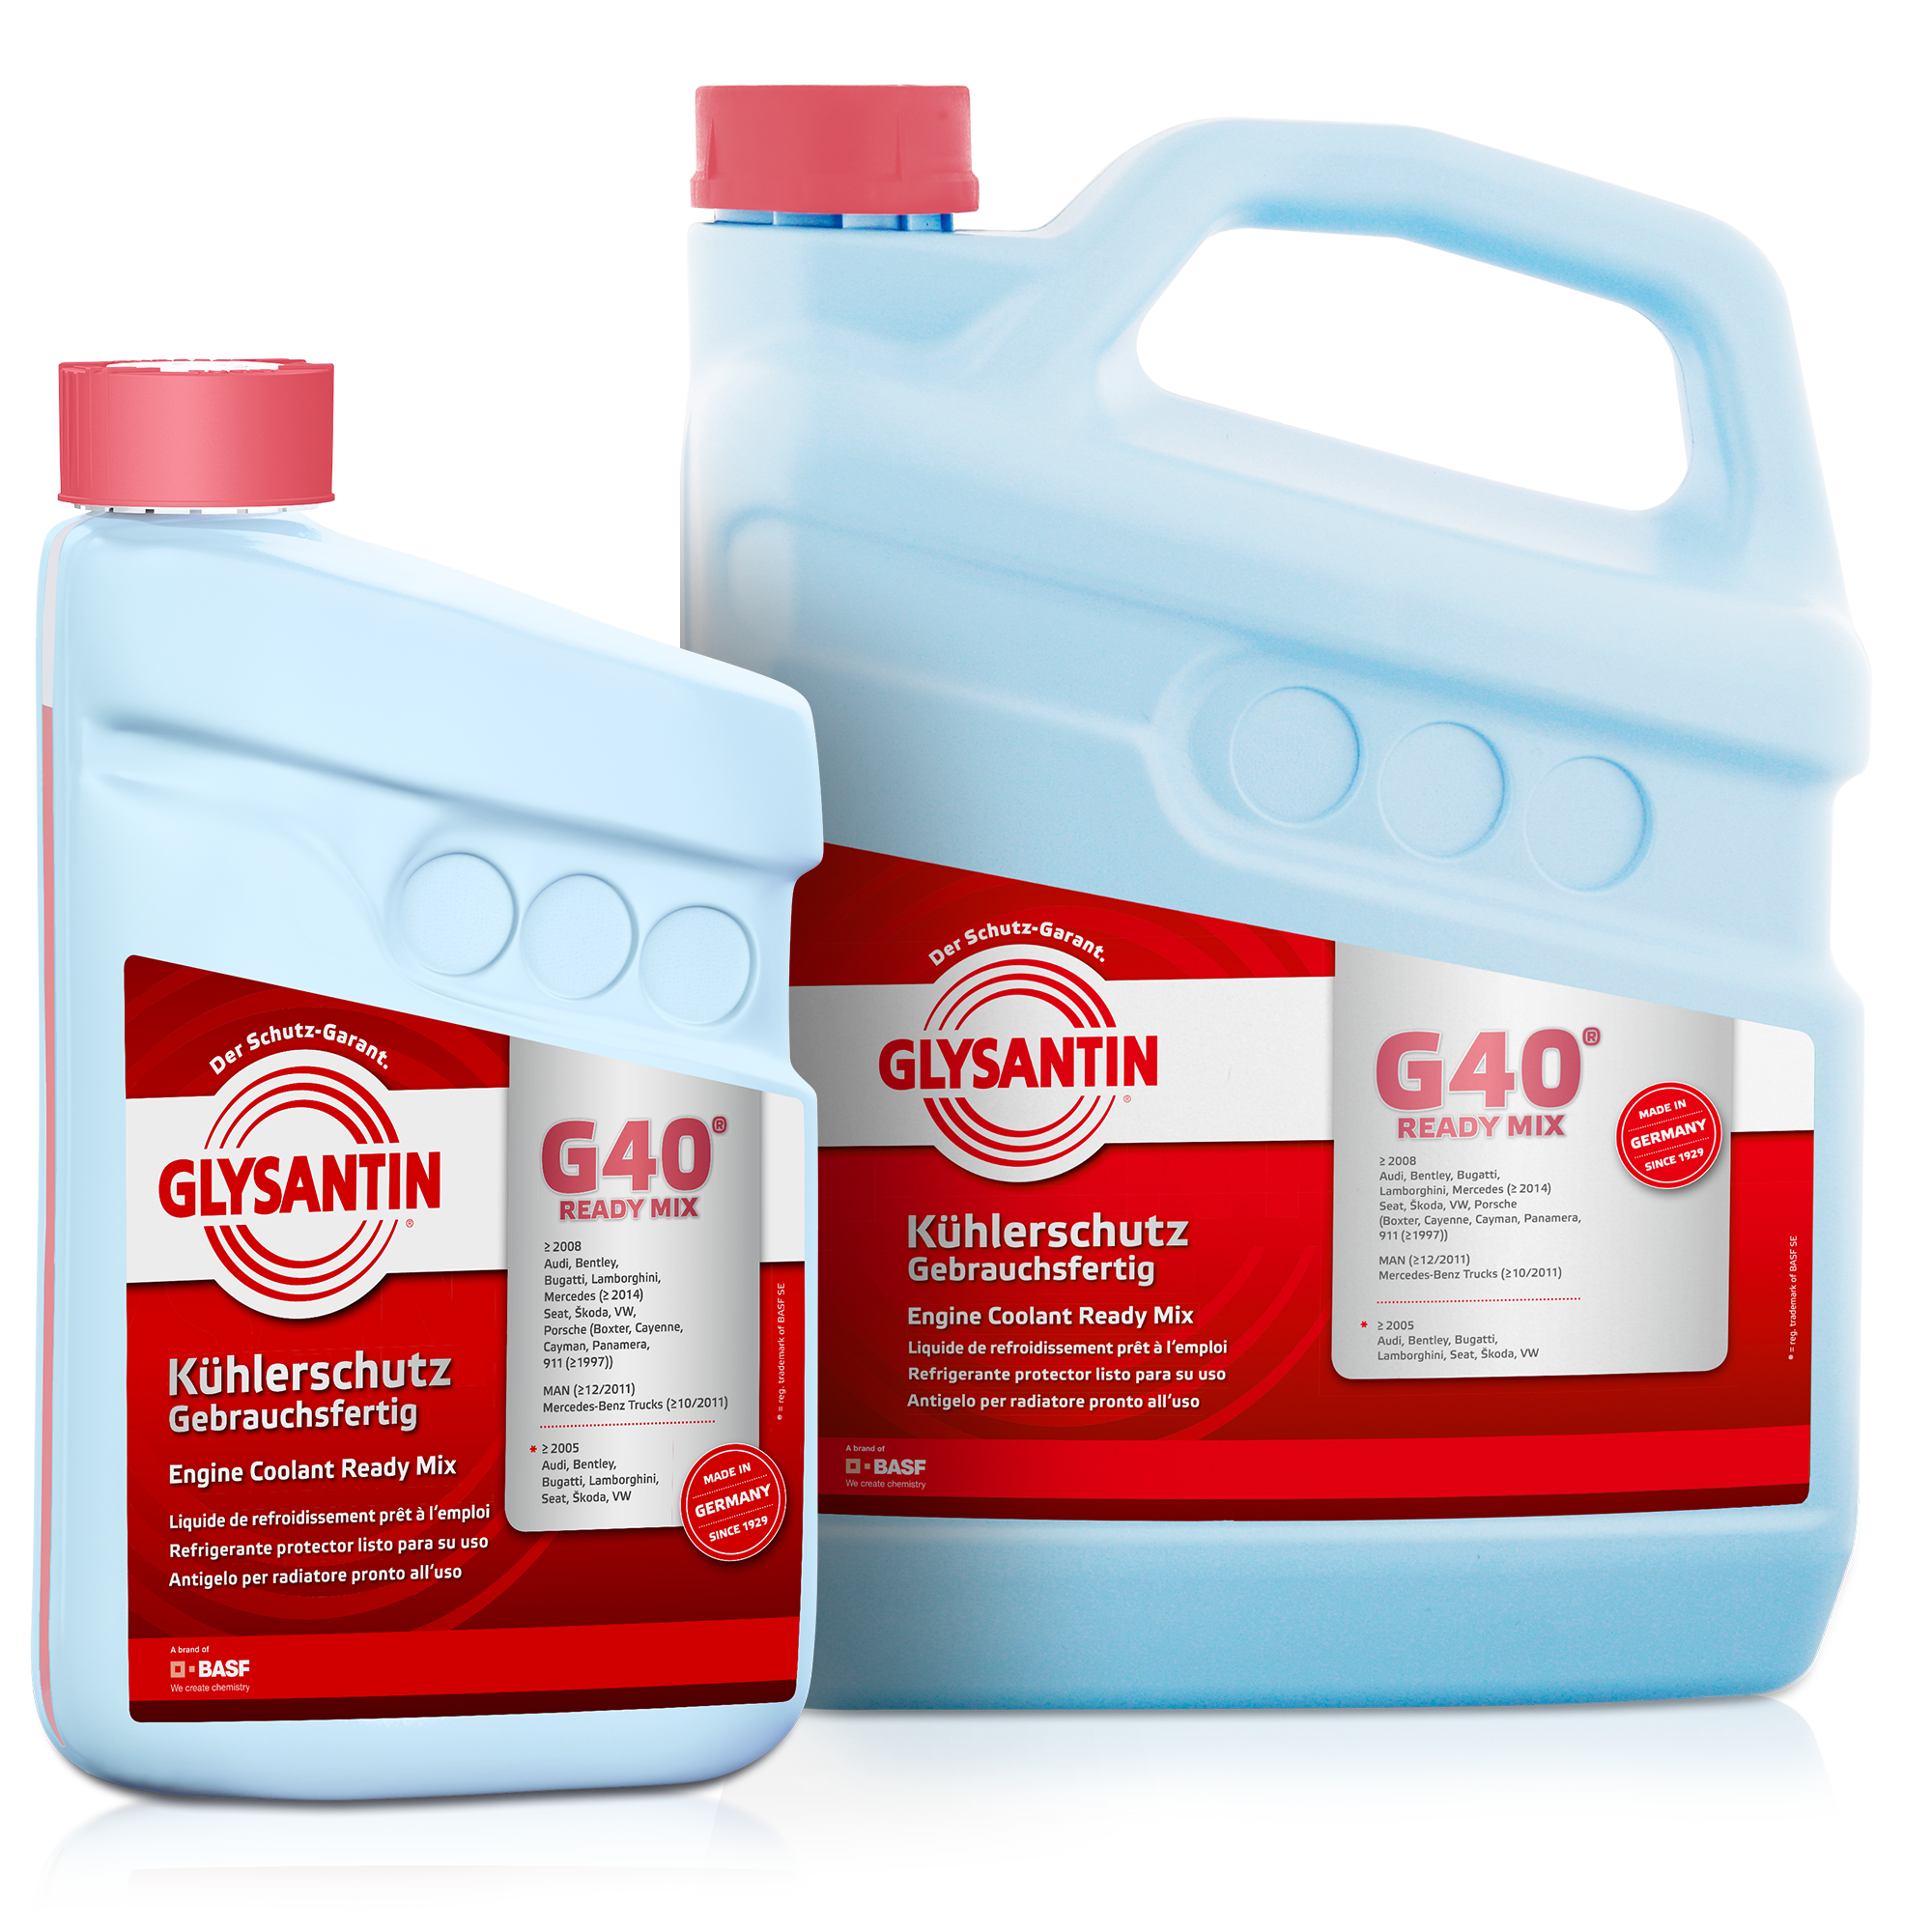 Glysantin G40 Ready Mix Porsche Engine Coolant The Premium For Your Vehicle